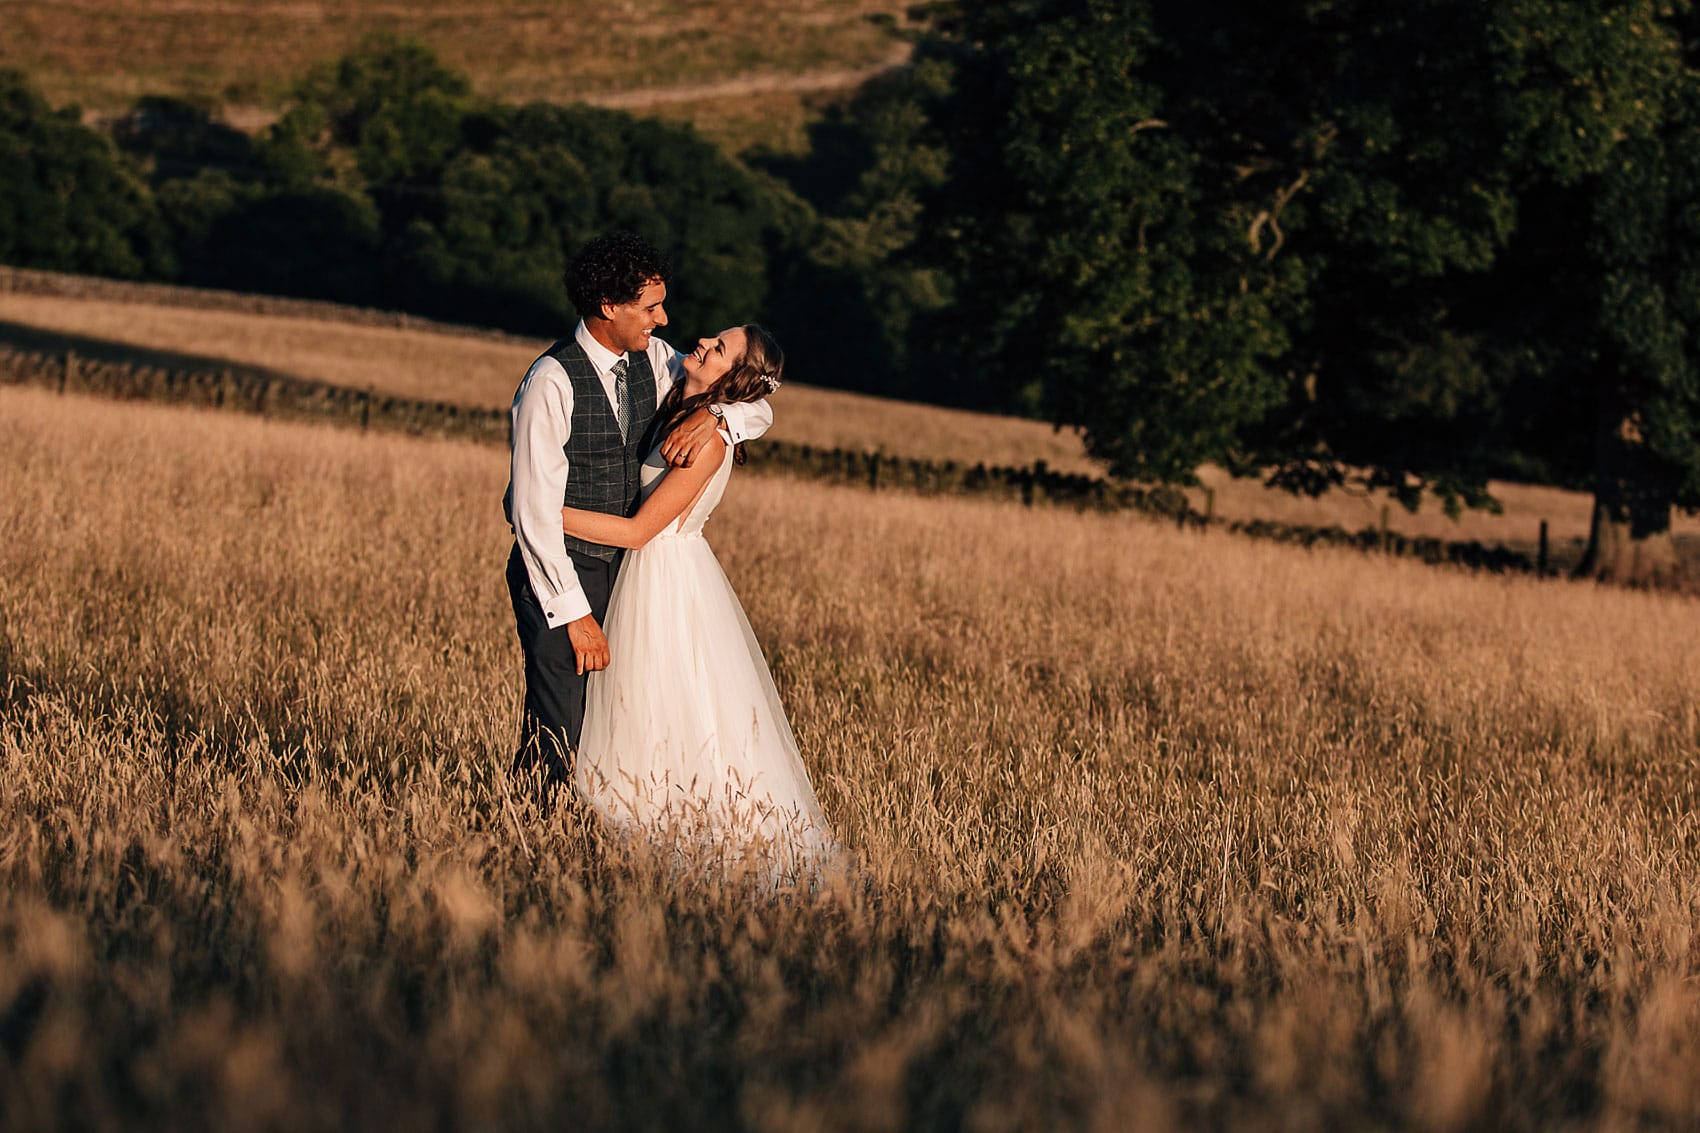 outdoor summer wedding photography Yorkshire